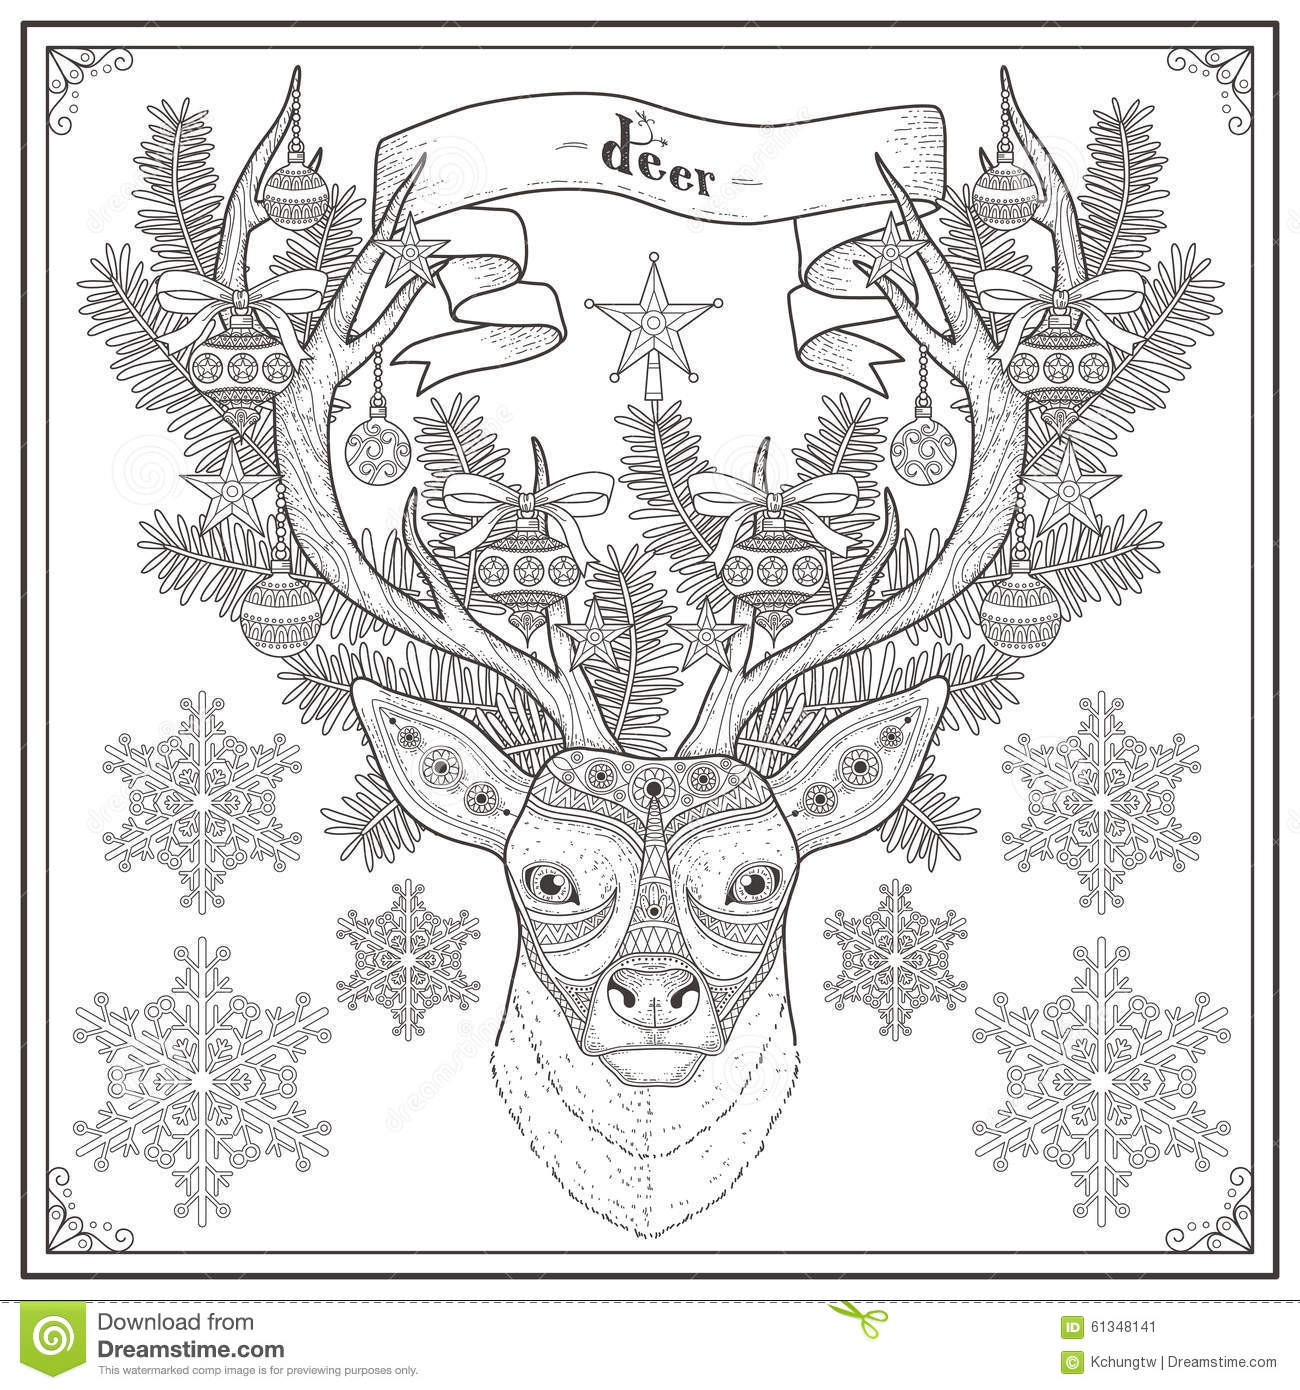 deer coloring page stock vector image 61348141